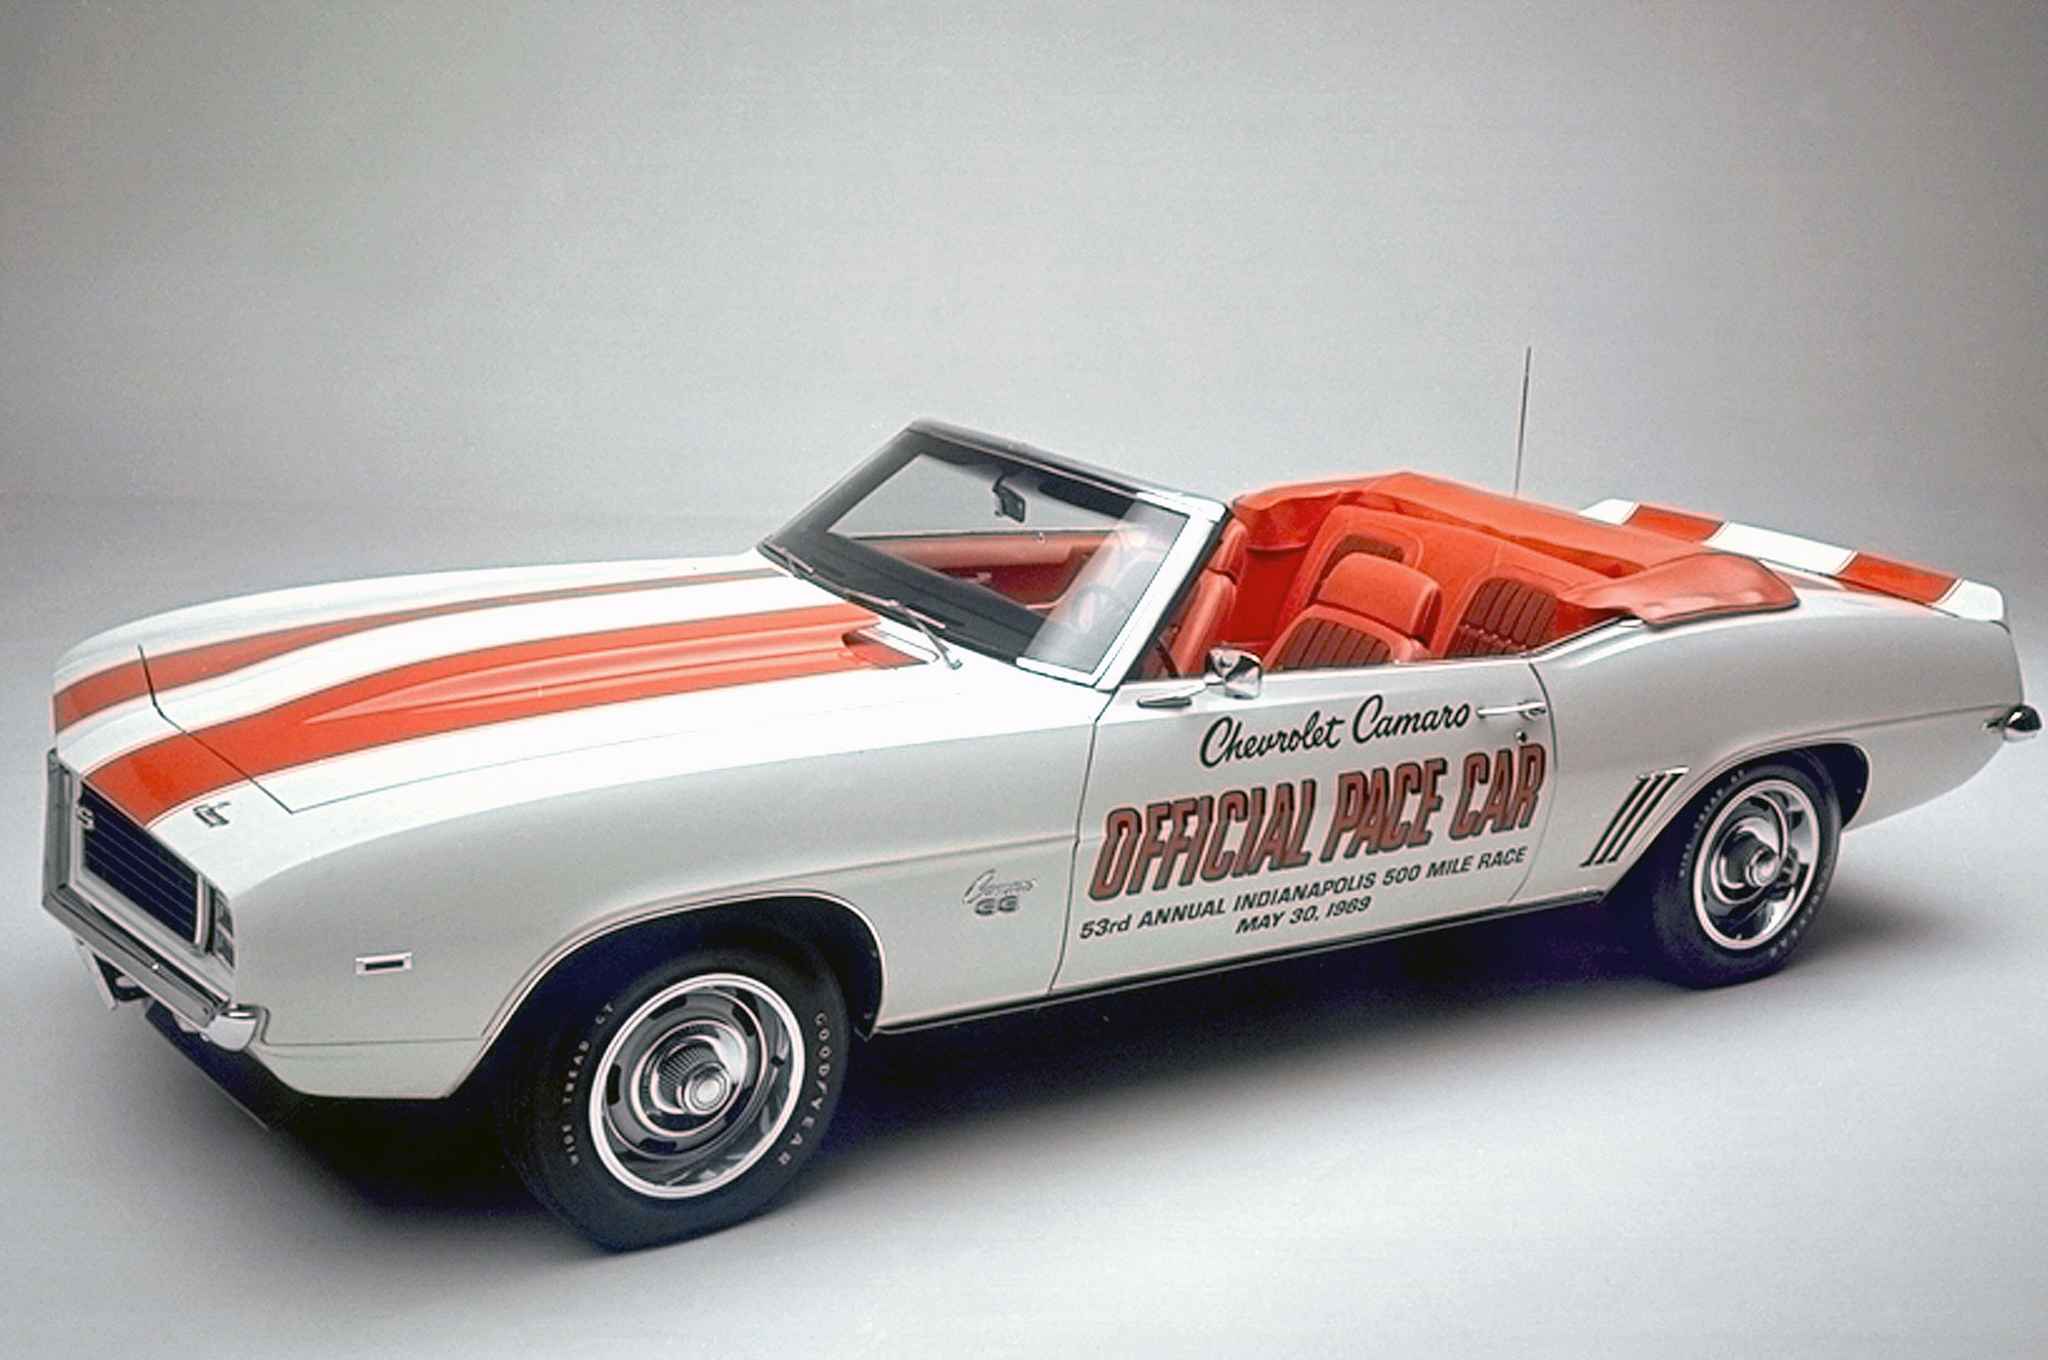 Chevrolet built 3,675 convertible replicas of the 1969 Camaro Indy Pace Car, some with 350 engines and others with the 396. All wore Hugger Orange stripes and interior trim. It would be the final year for Camaro convertibles for more than 15 years.